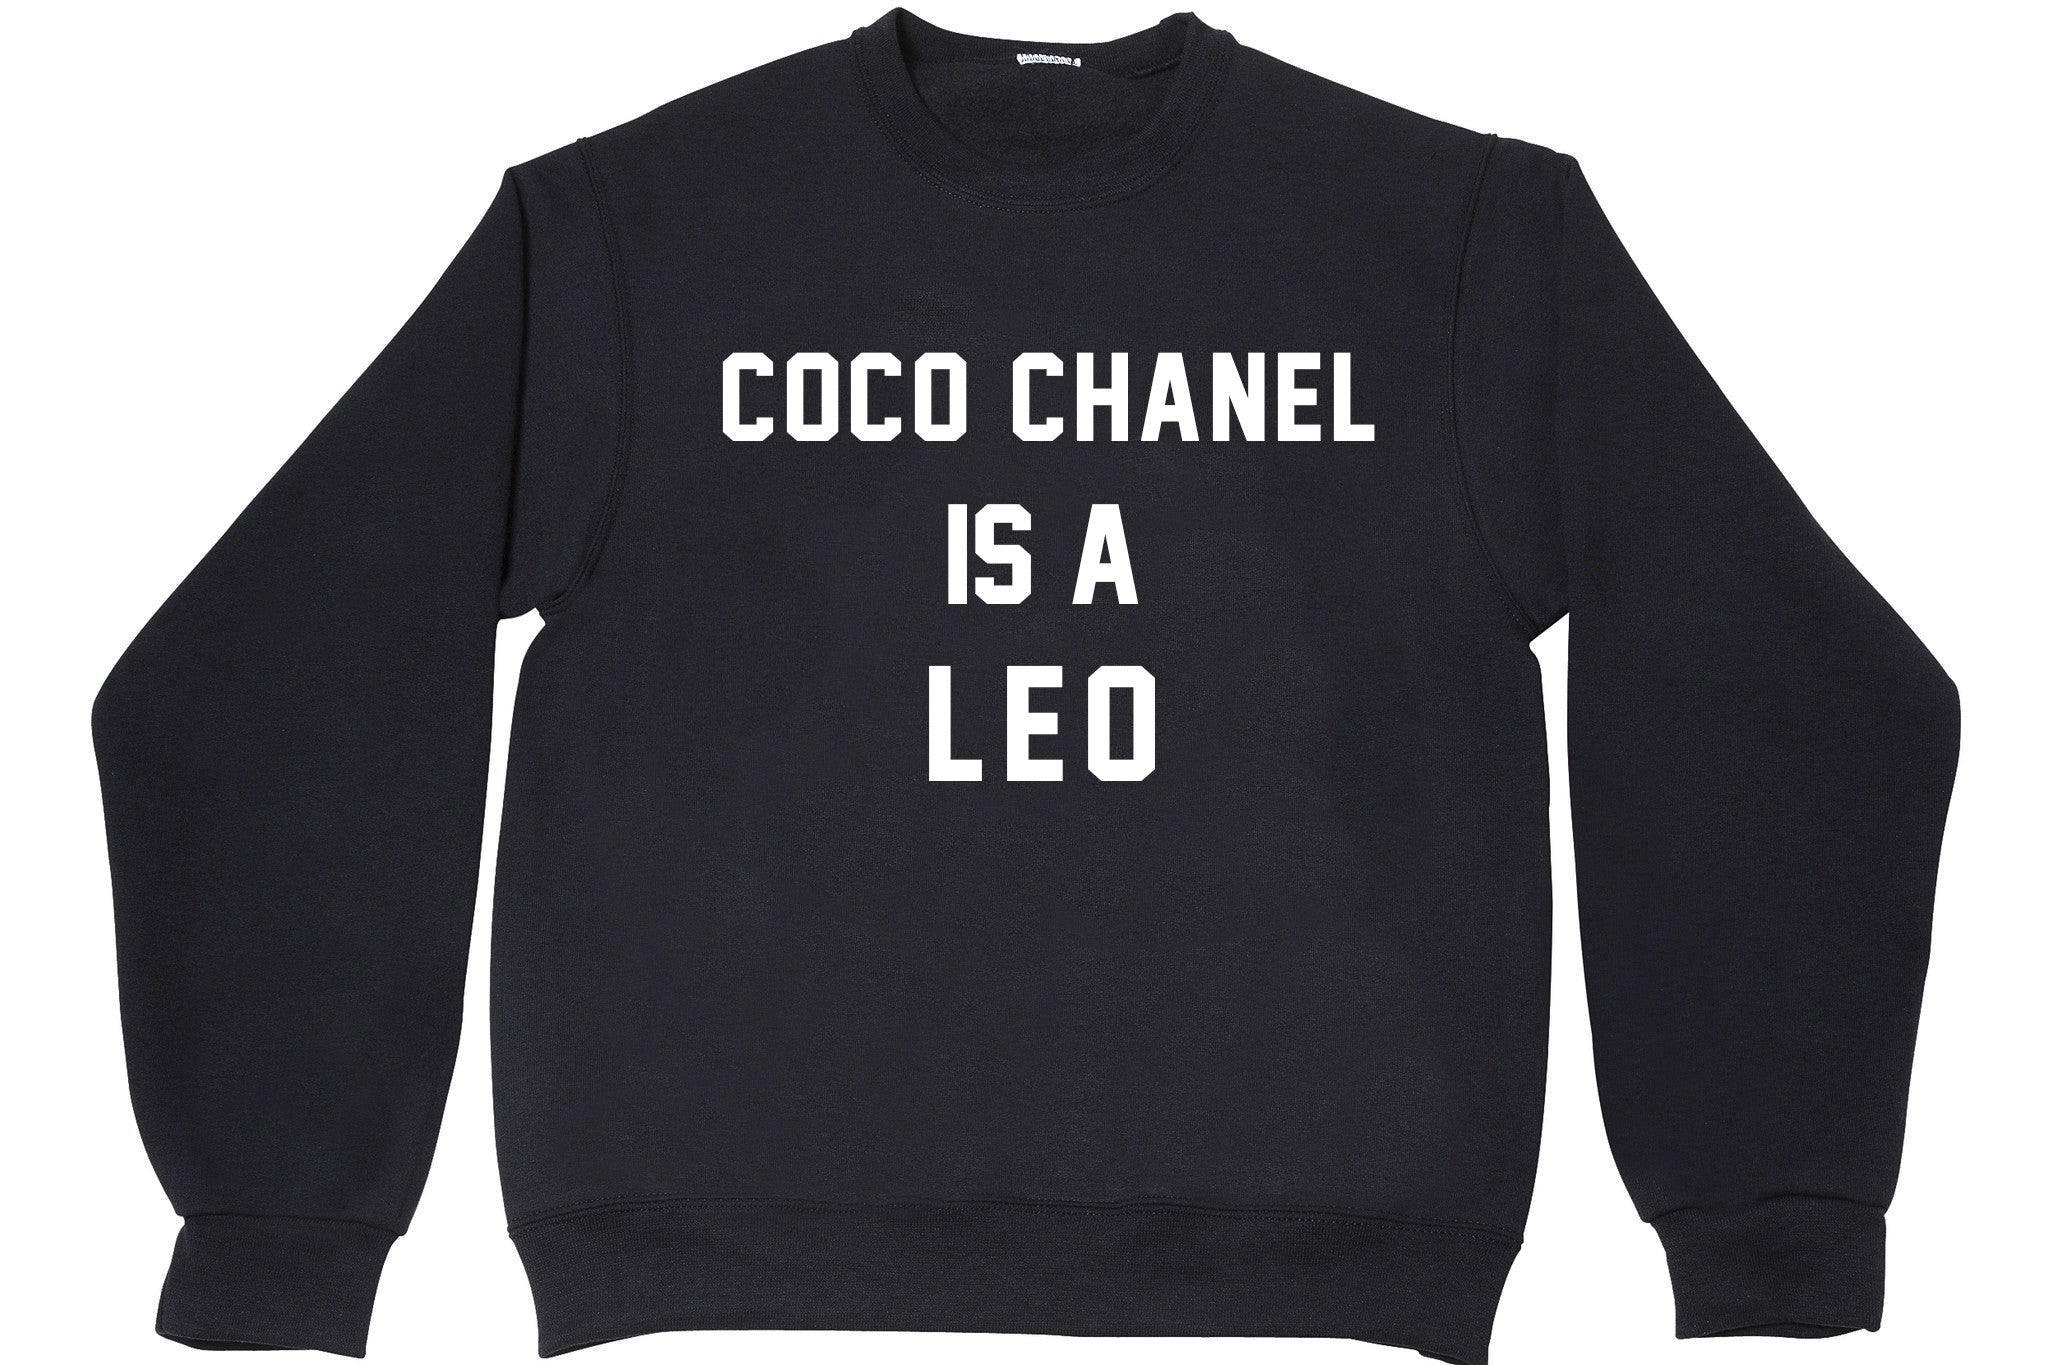 COCO CHANEL IS A LEO